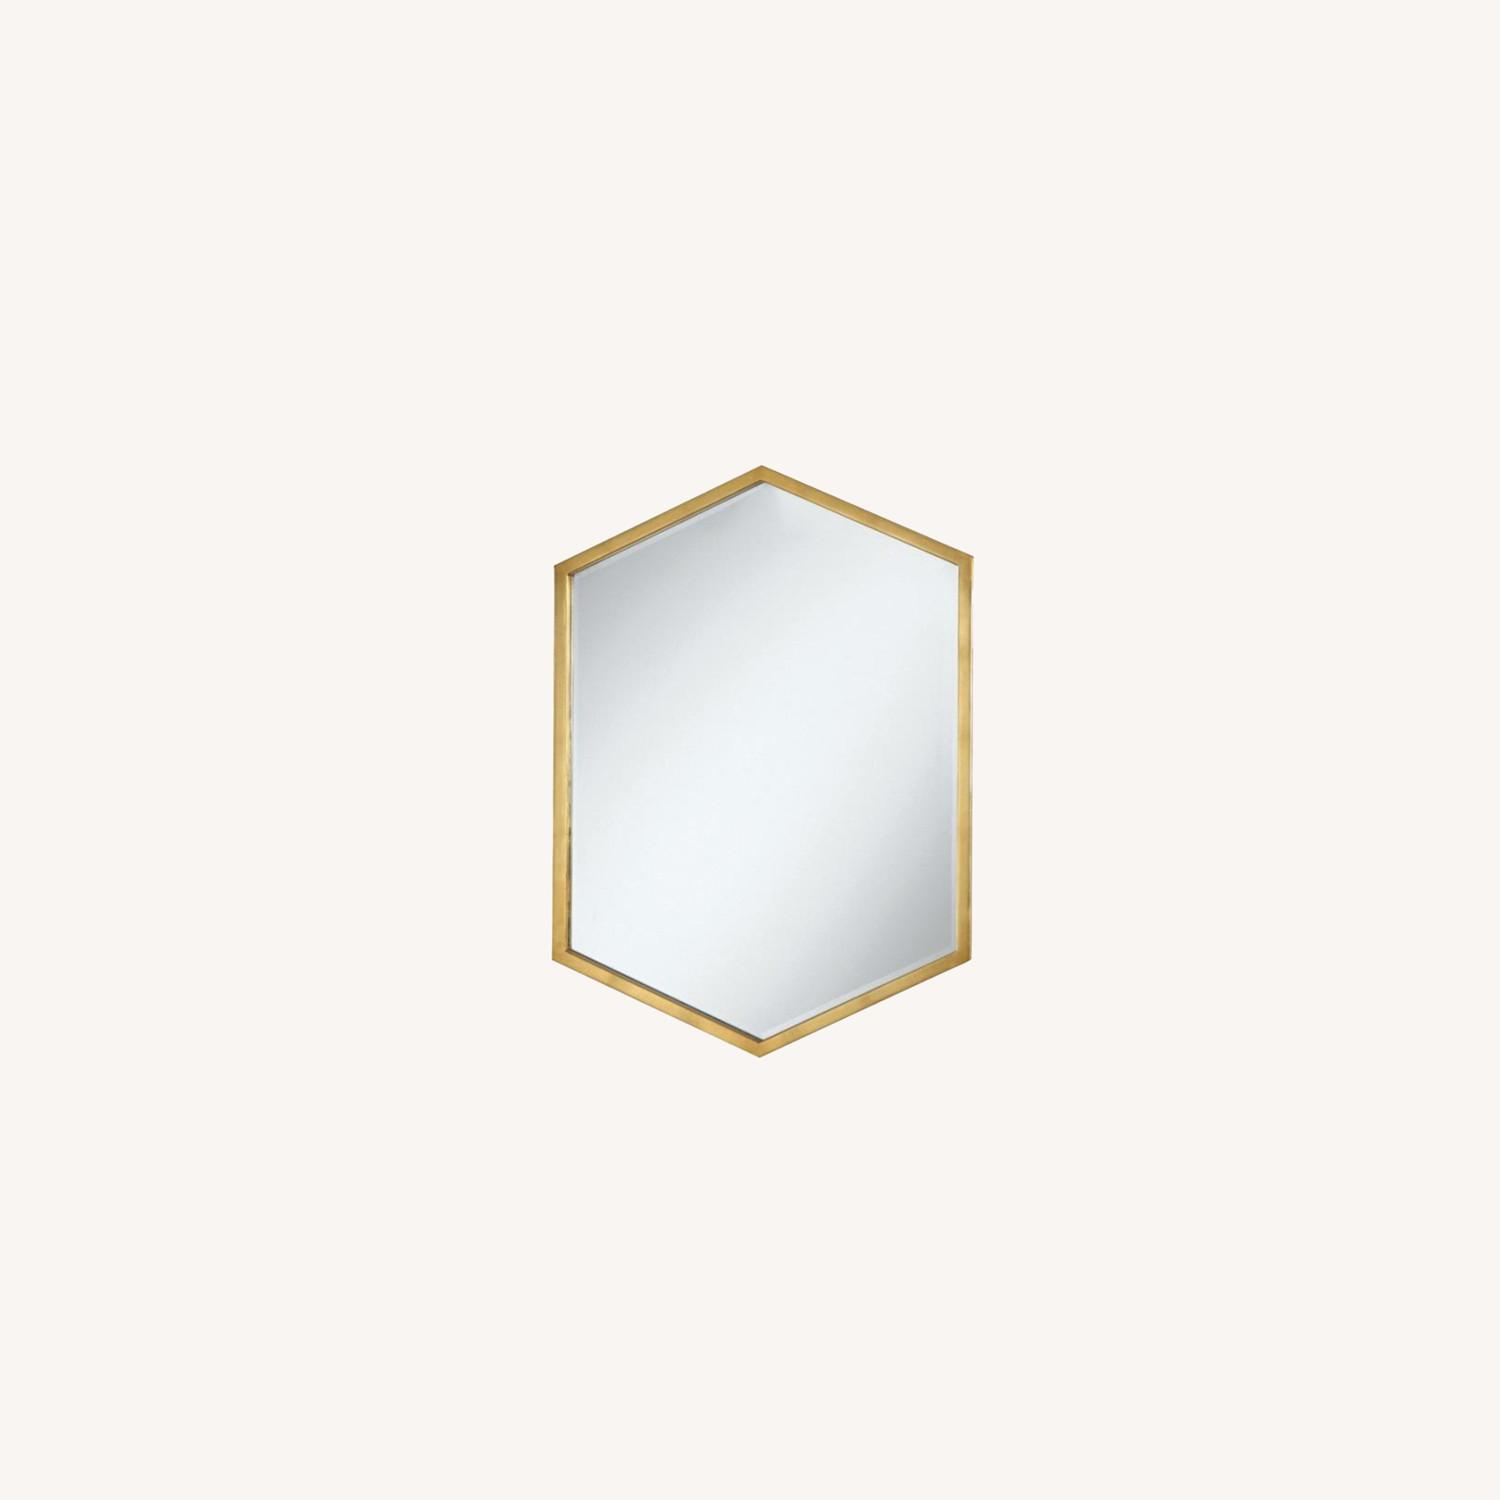 Mirror In Matte Gold Hexagon-Shaped Frame Finish - image-3